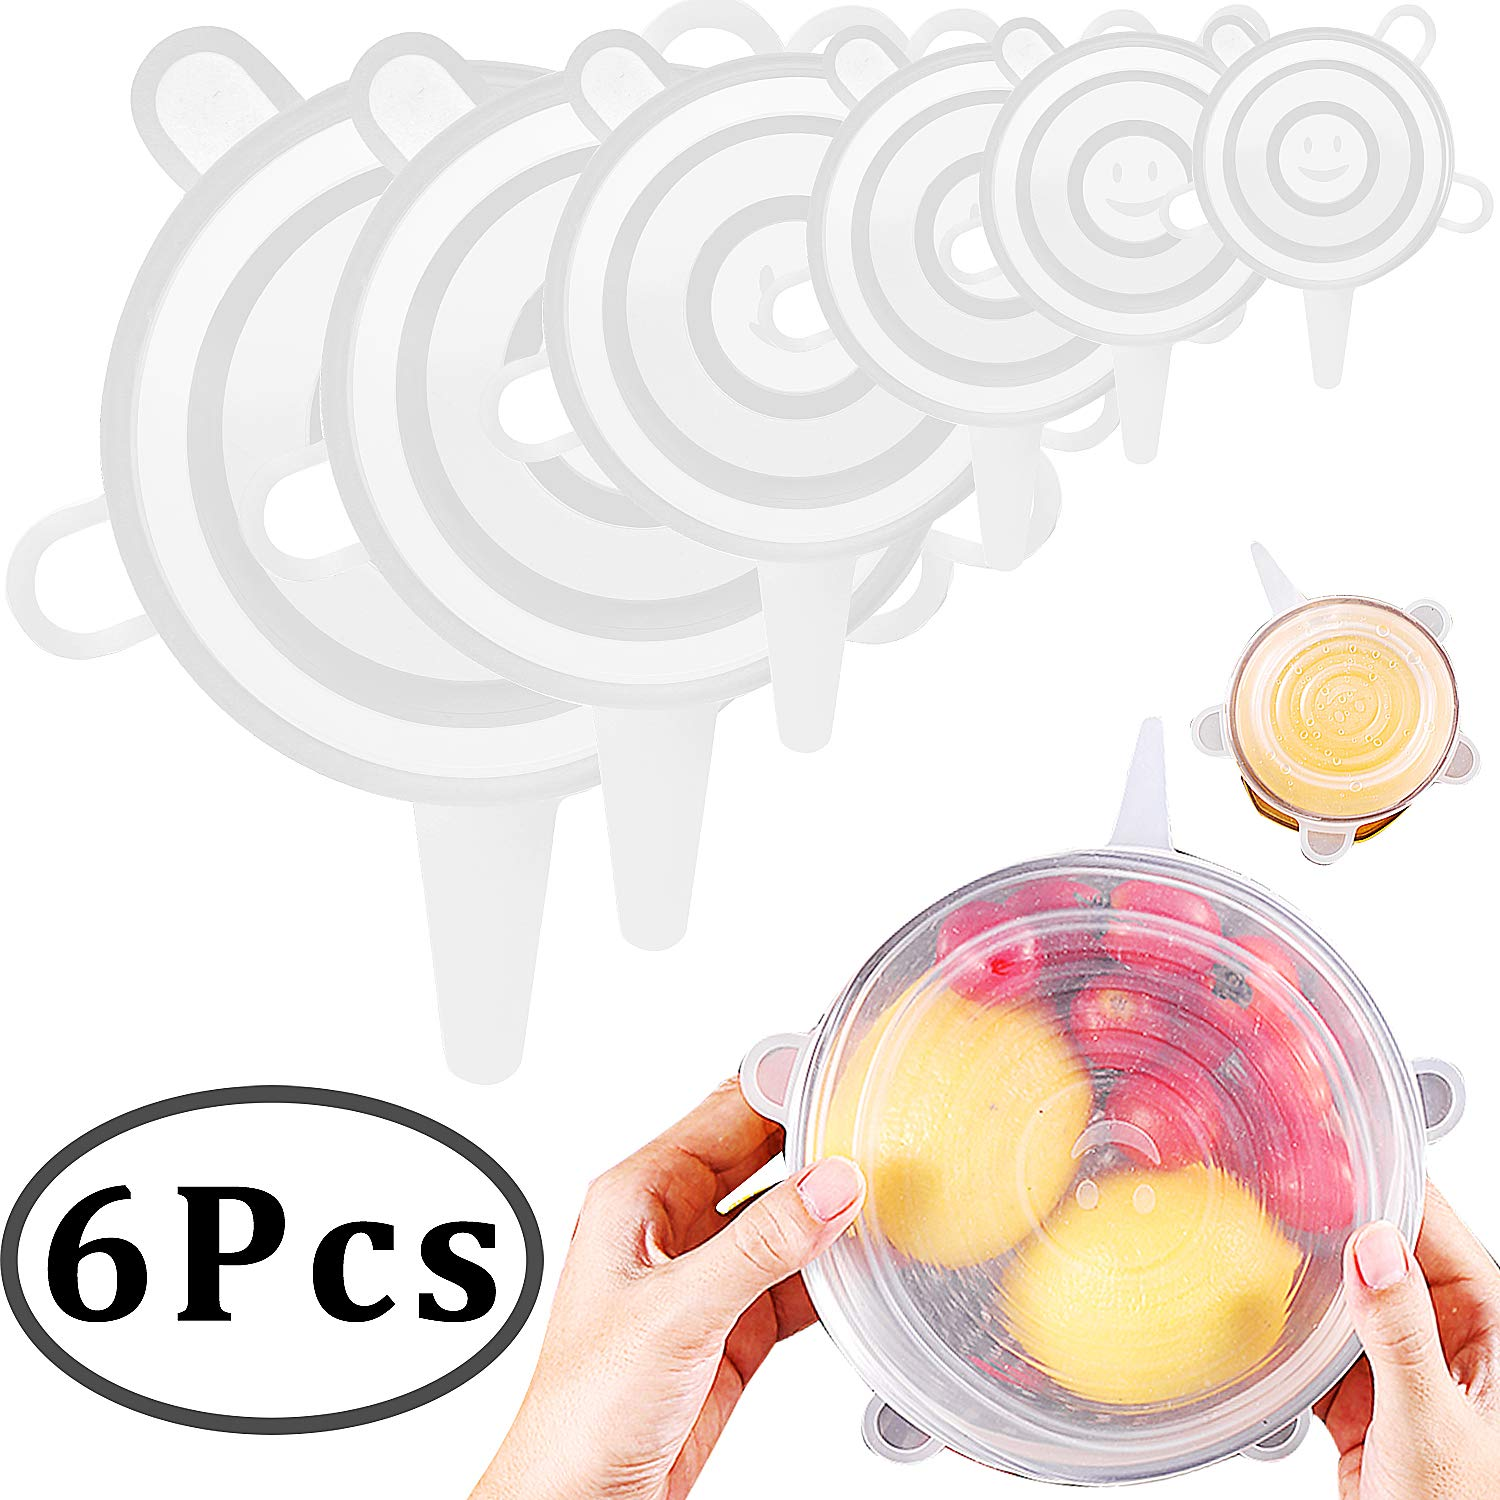 Outee Silicone Stretch Lids 6 Pack Silicone Bowl Lids Suction Food Saver Covers for Bowls Pot Cup with Drawstring Bag, Assorted Size BPA Free, Dishwasher, Microwave, Oven and Freezer Safe